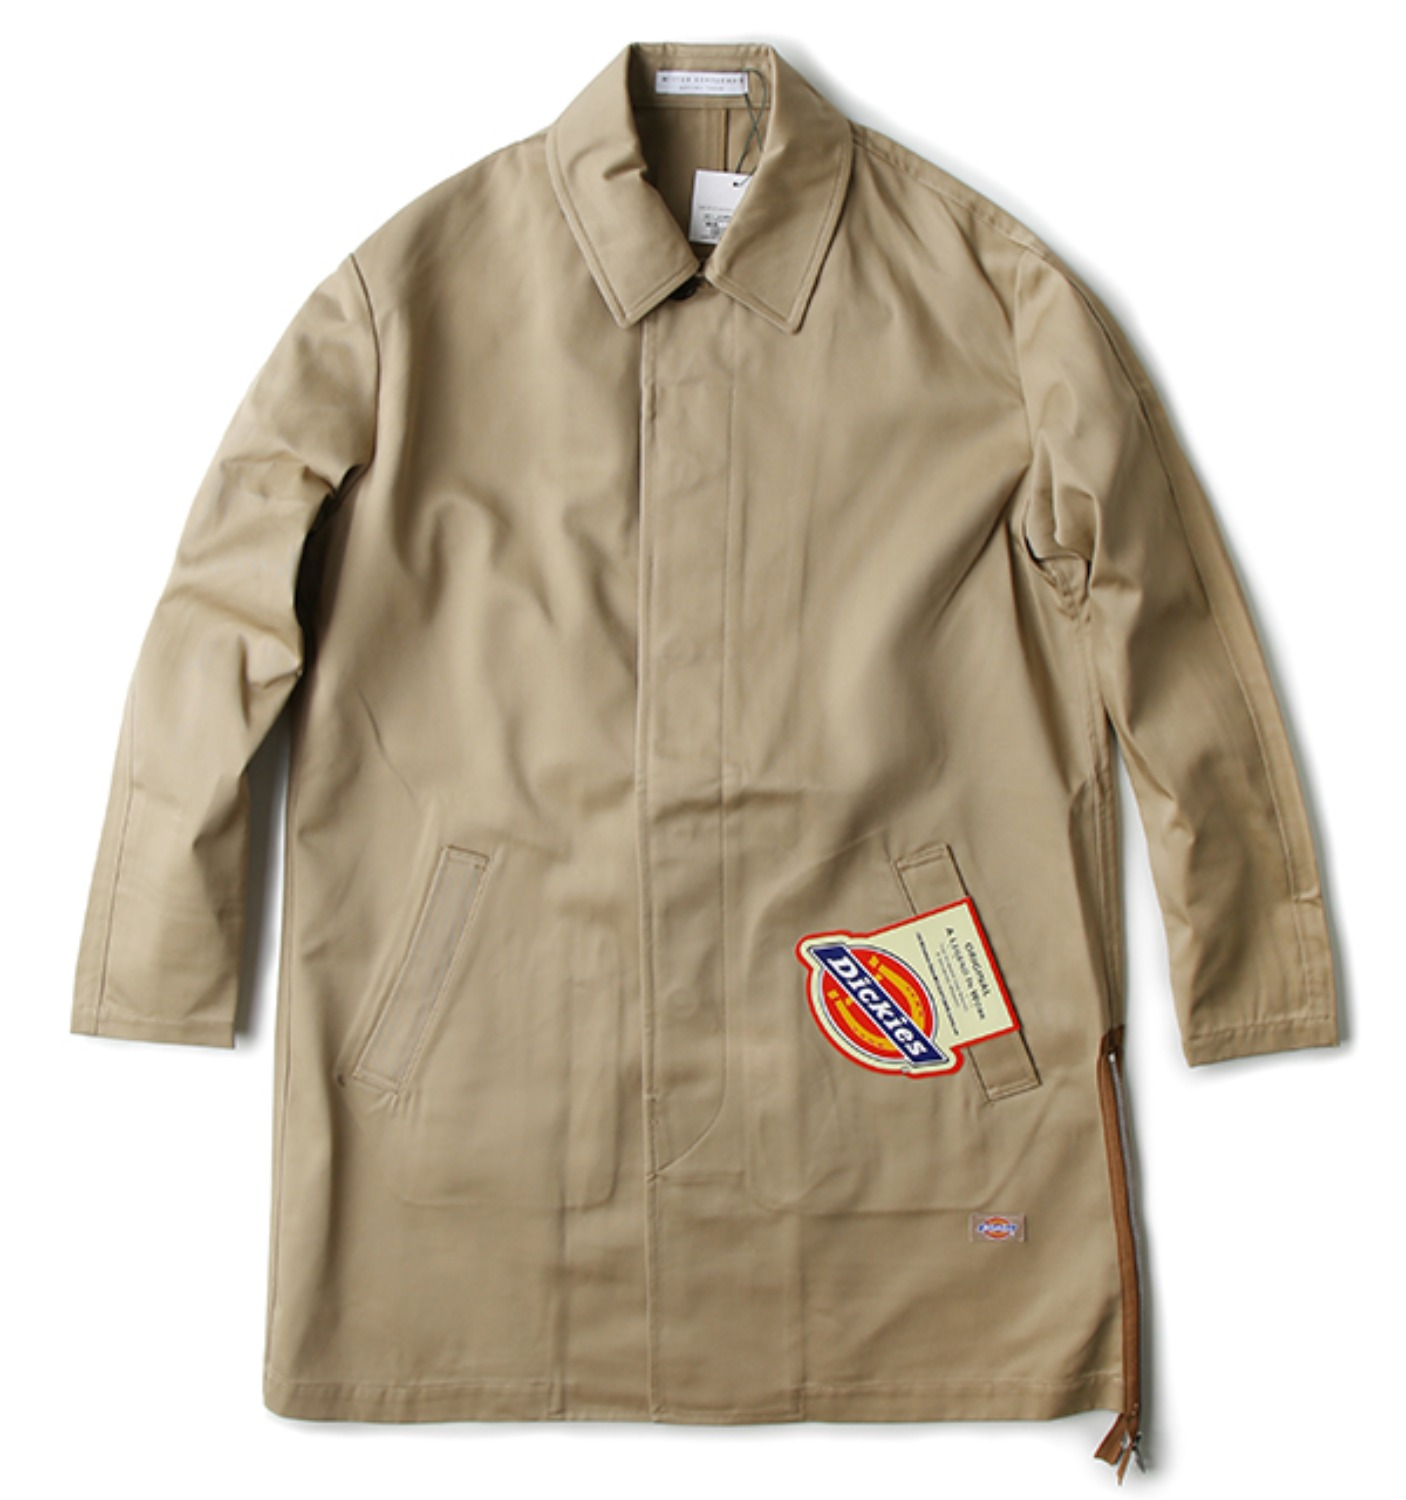 Side Zip-up Soutien Dickies Coat BEIGE(MG-DIC01)